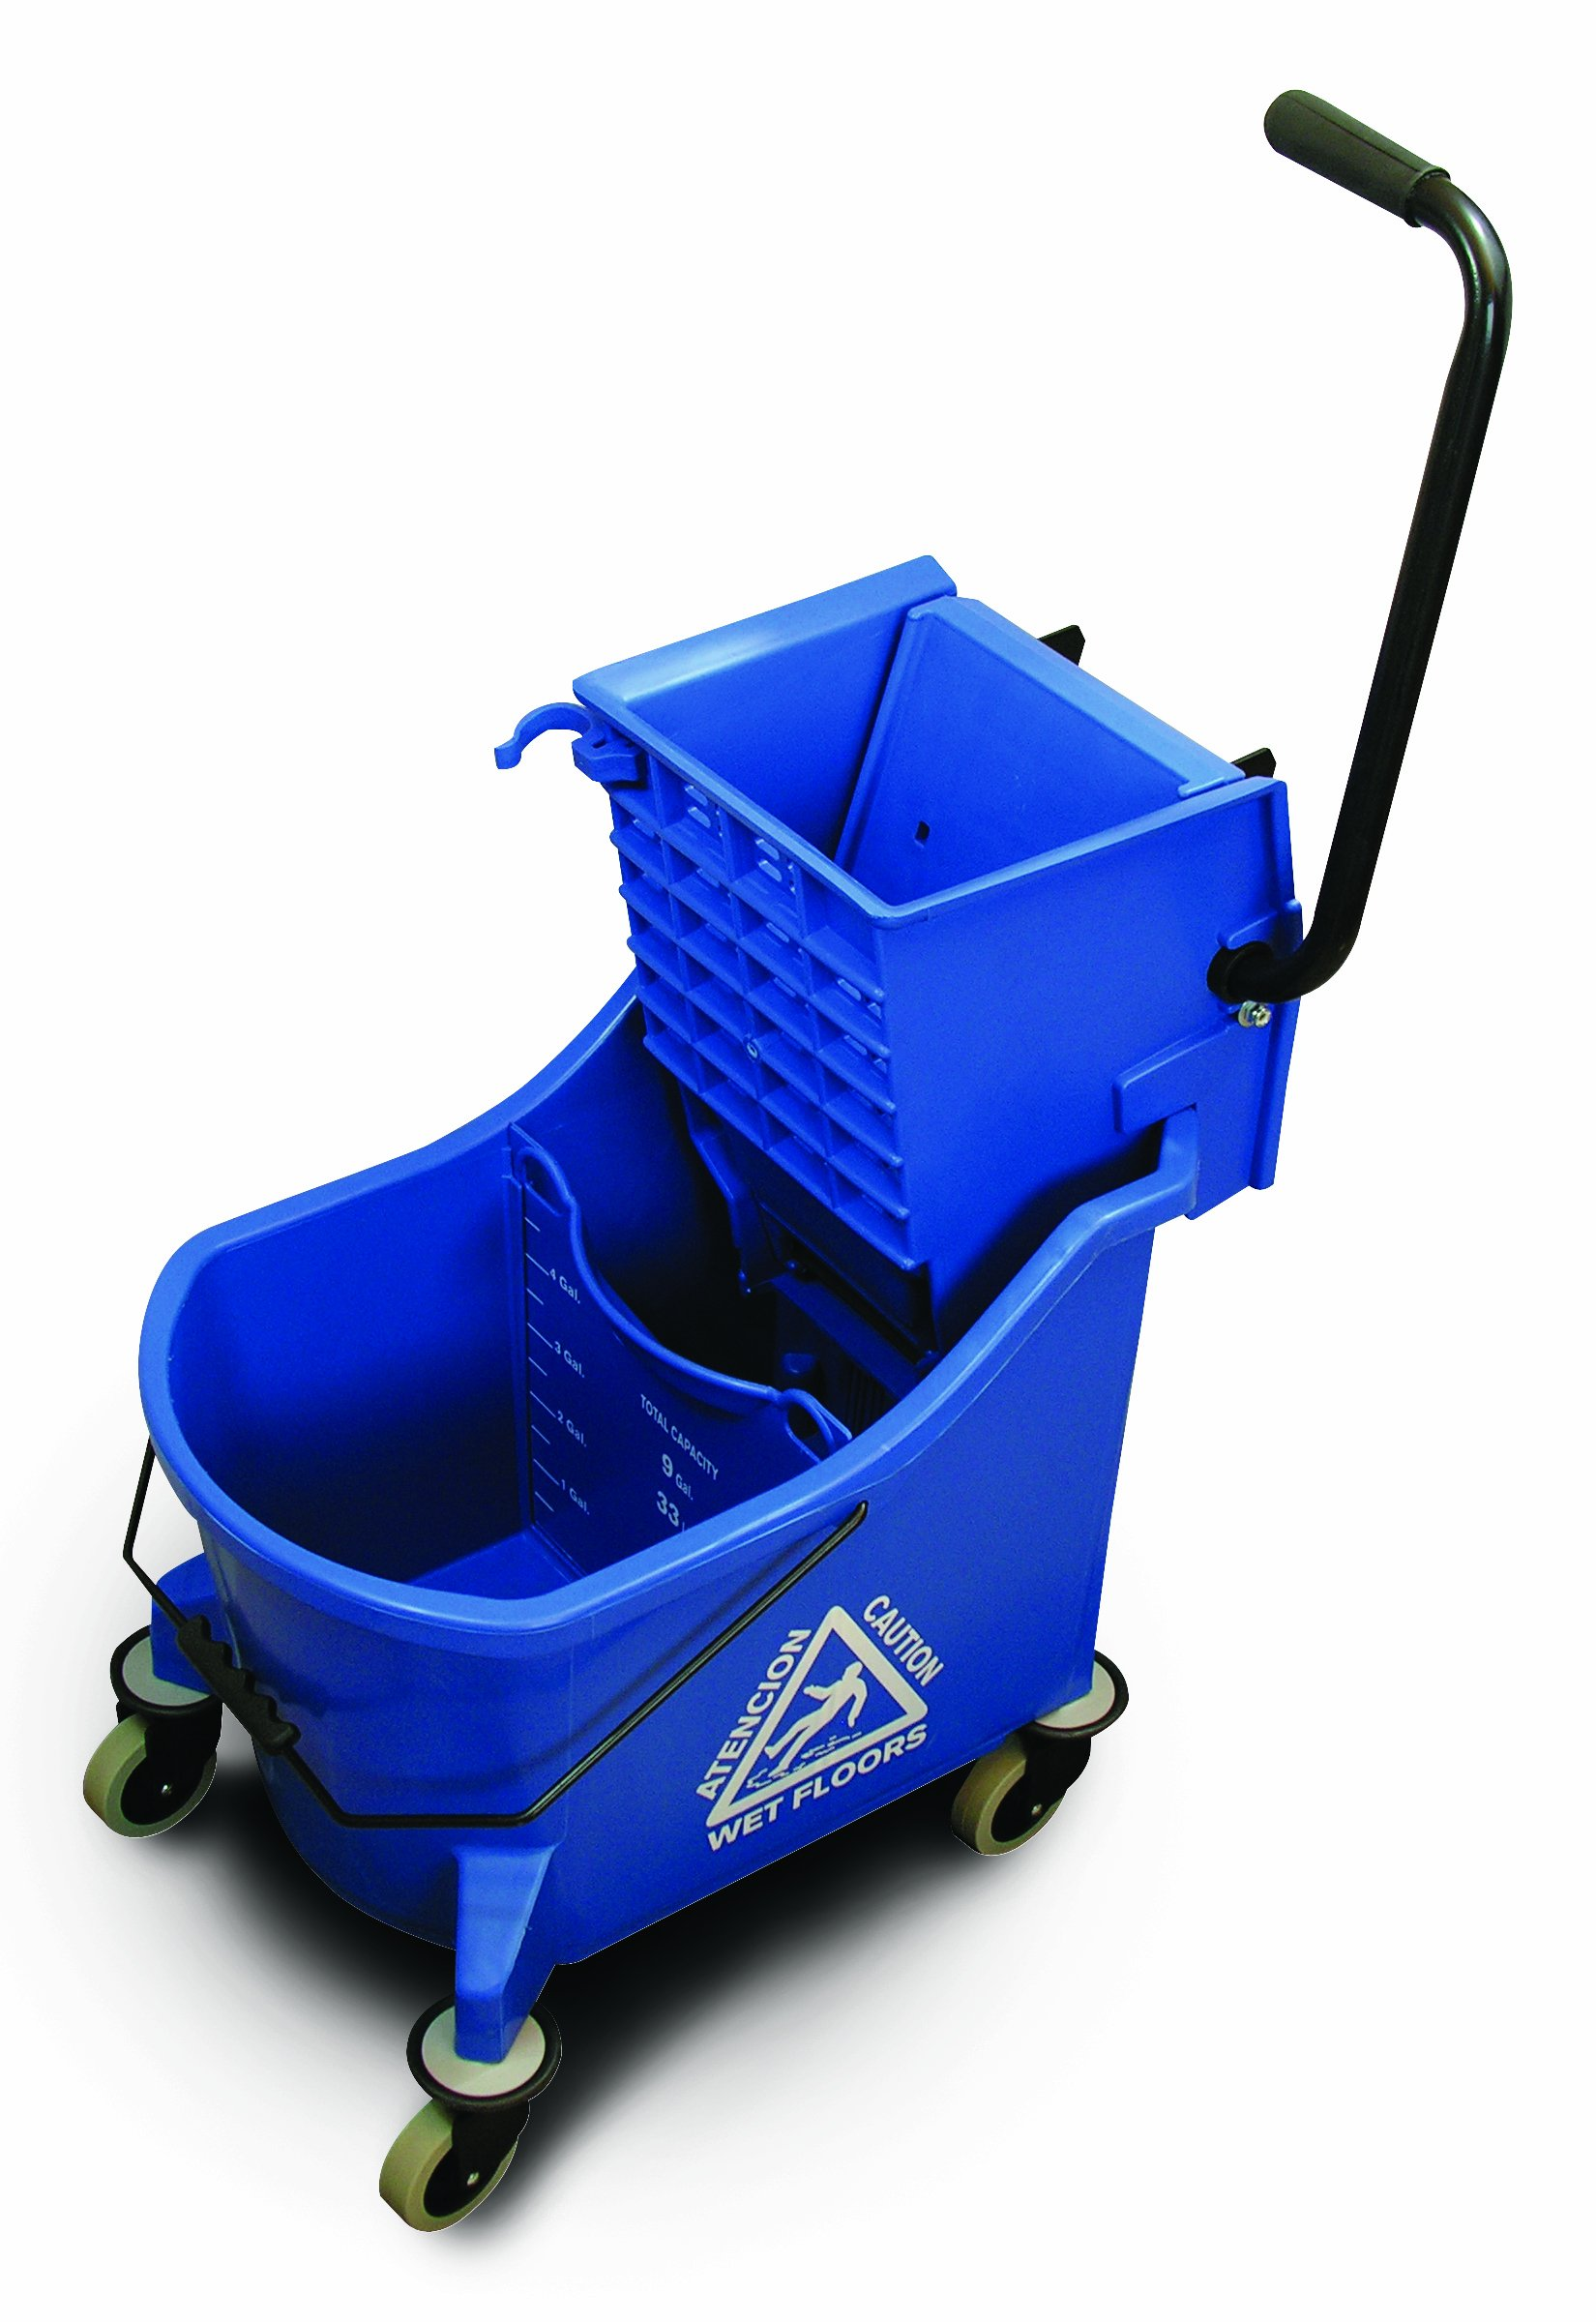 O'Cedar Commercial 6978 MaxiPlus Mop Bucket and Wringer, Blue